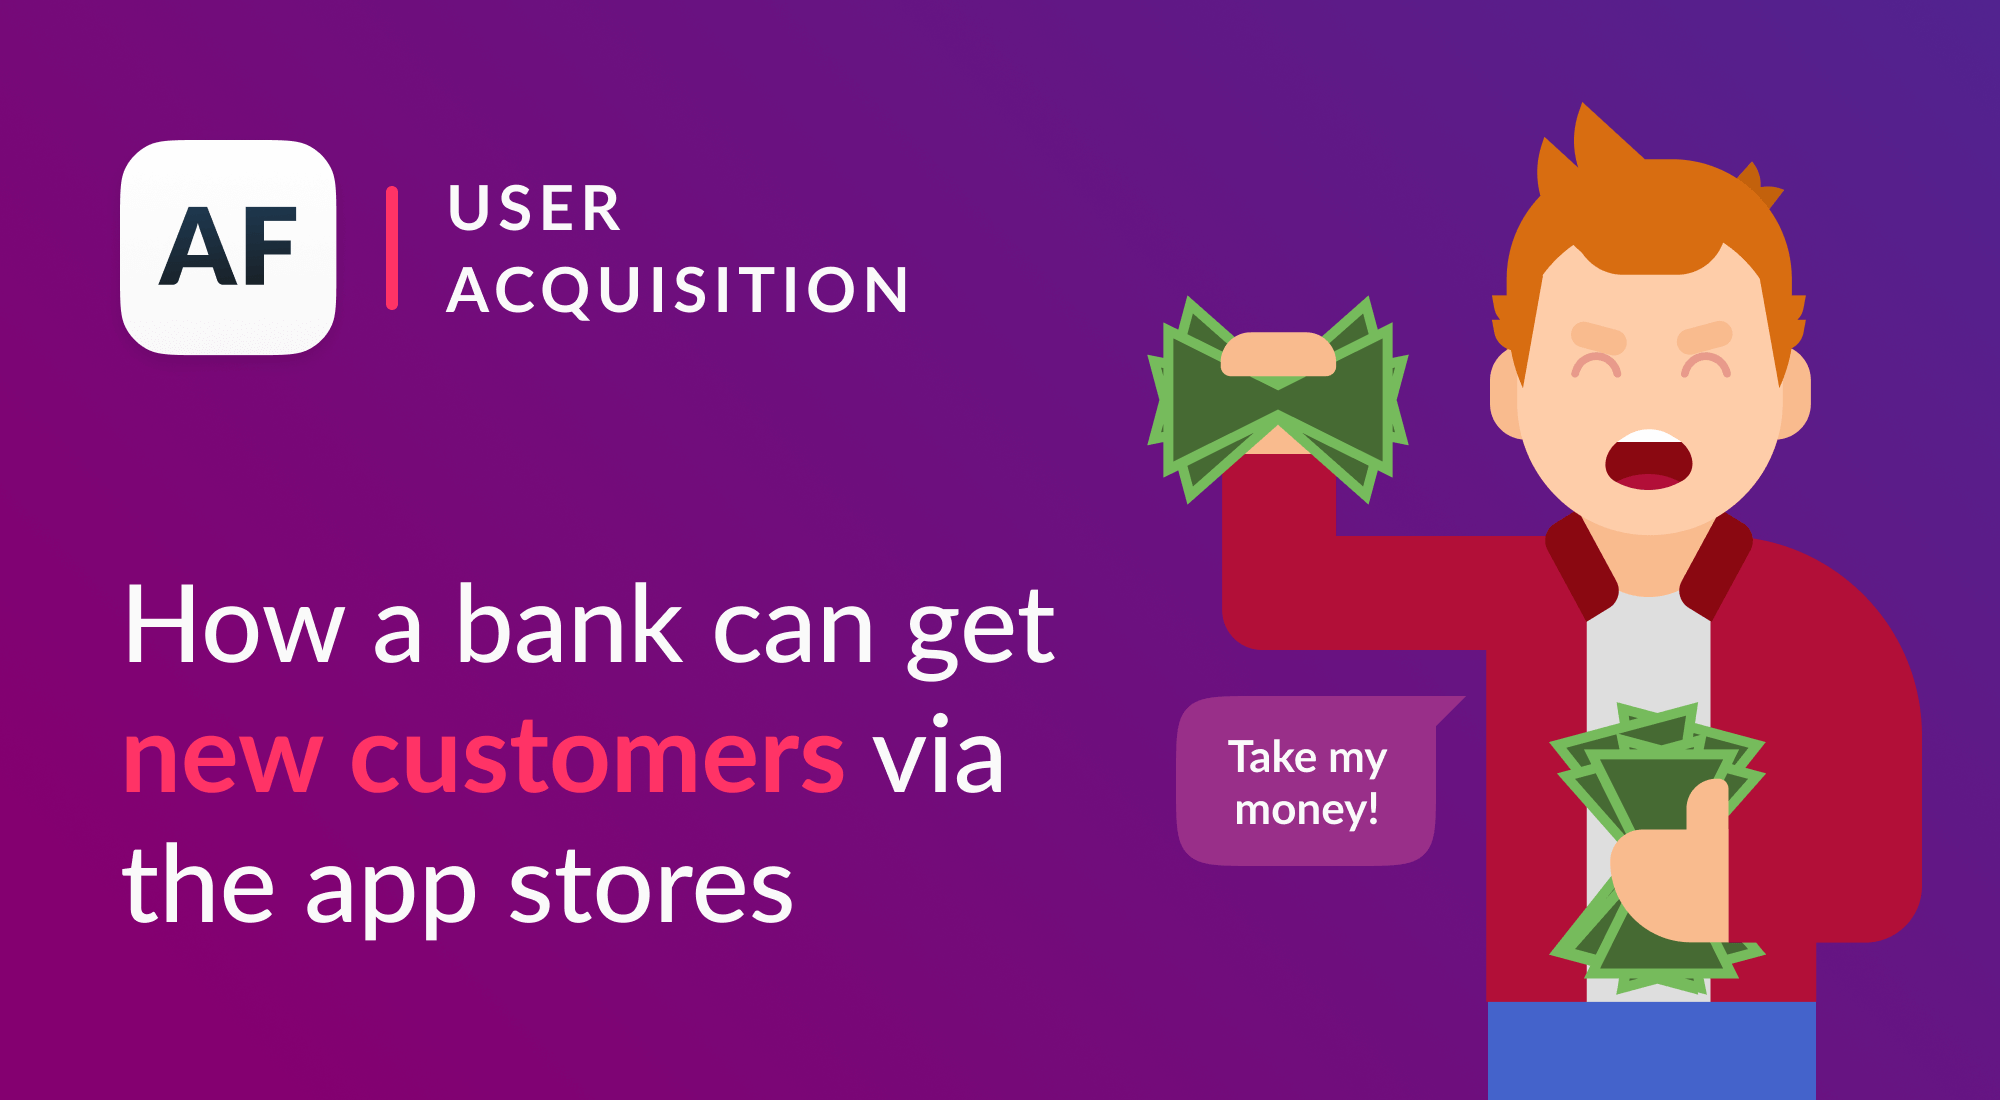 A surprising way for financial institutions to get new customers